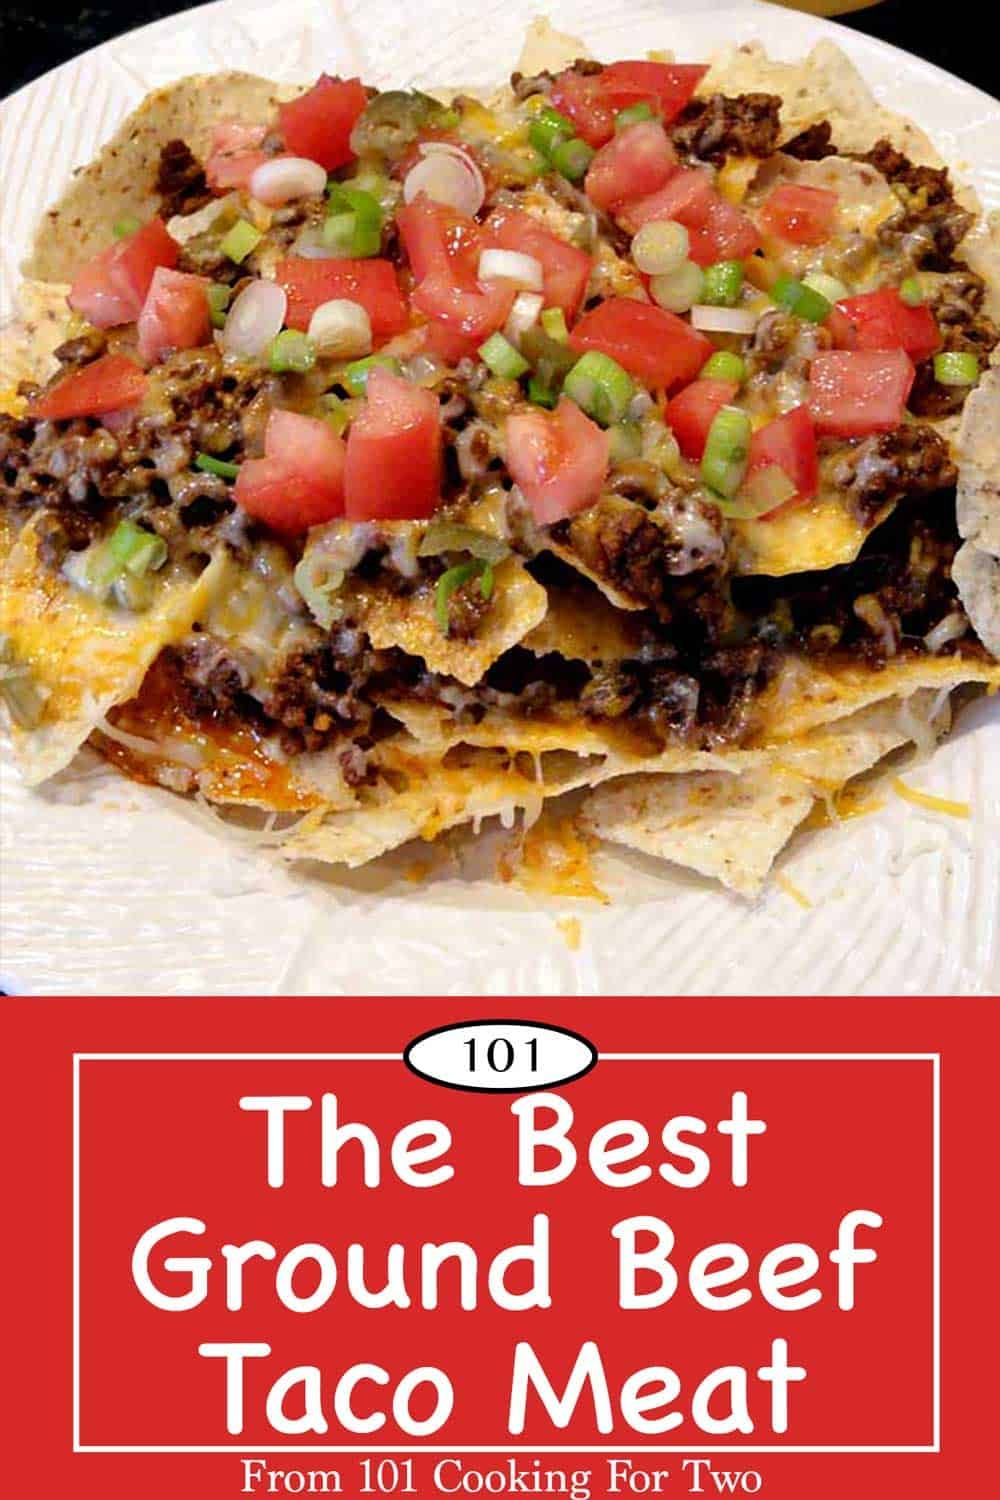 The Best Ground Beef Taco Meat In Less Than 25 Minutes Recipe In 2020 Taco Meat Tacos Beef Ground Beef Tacos